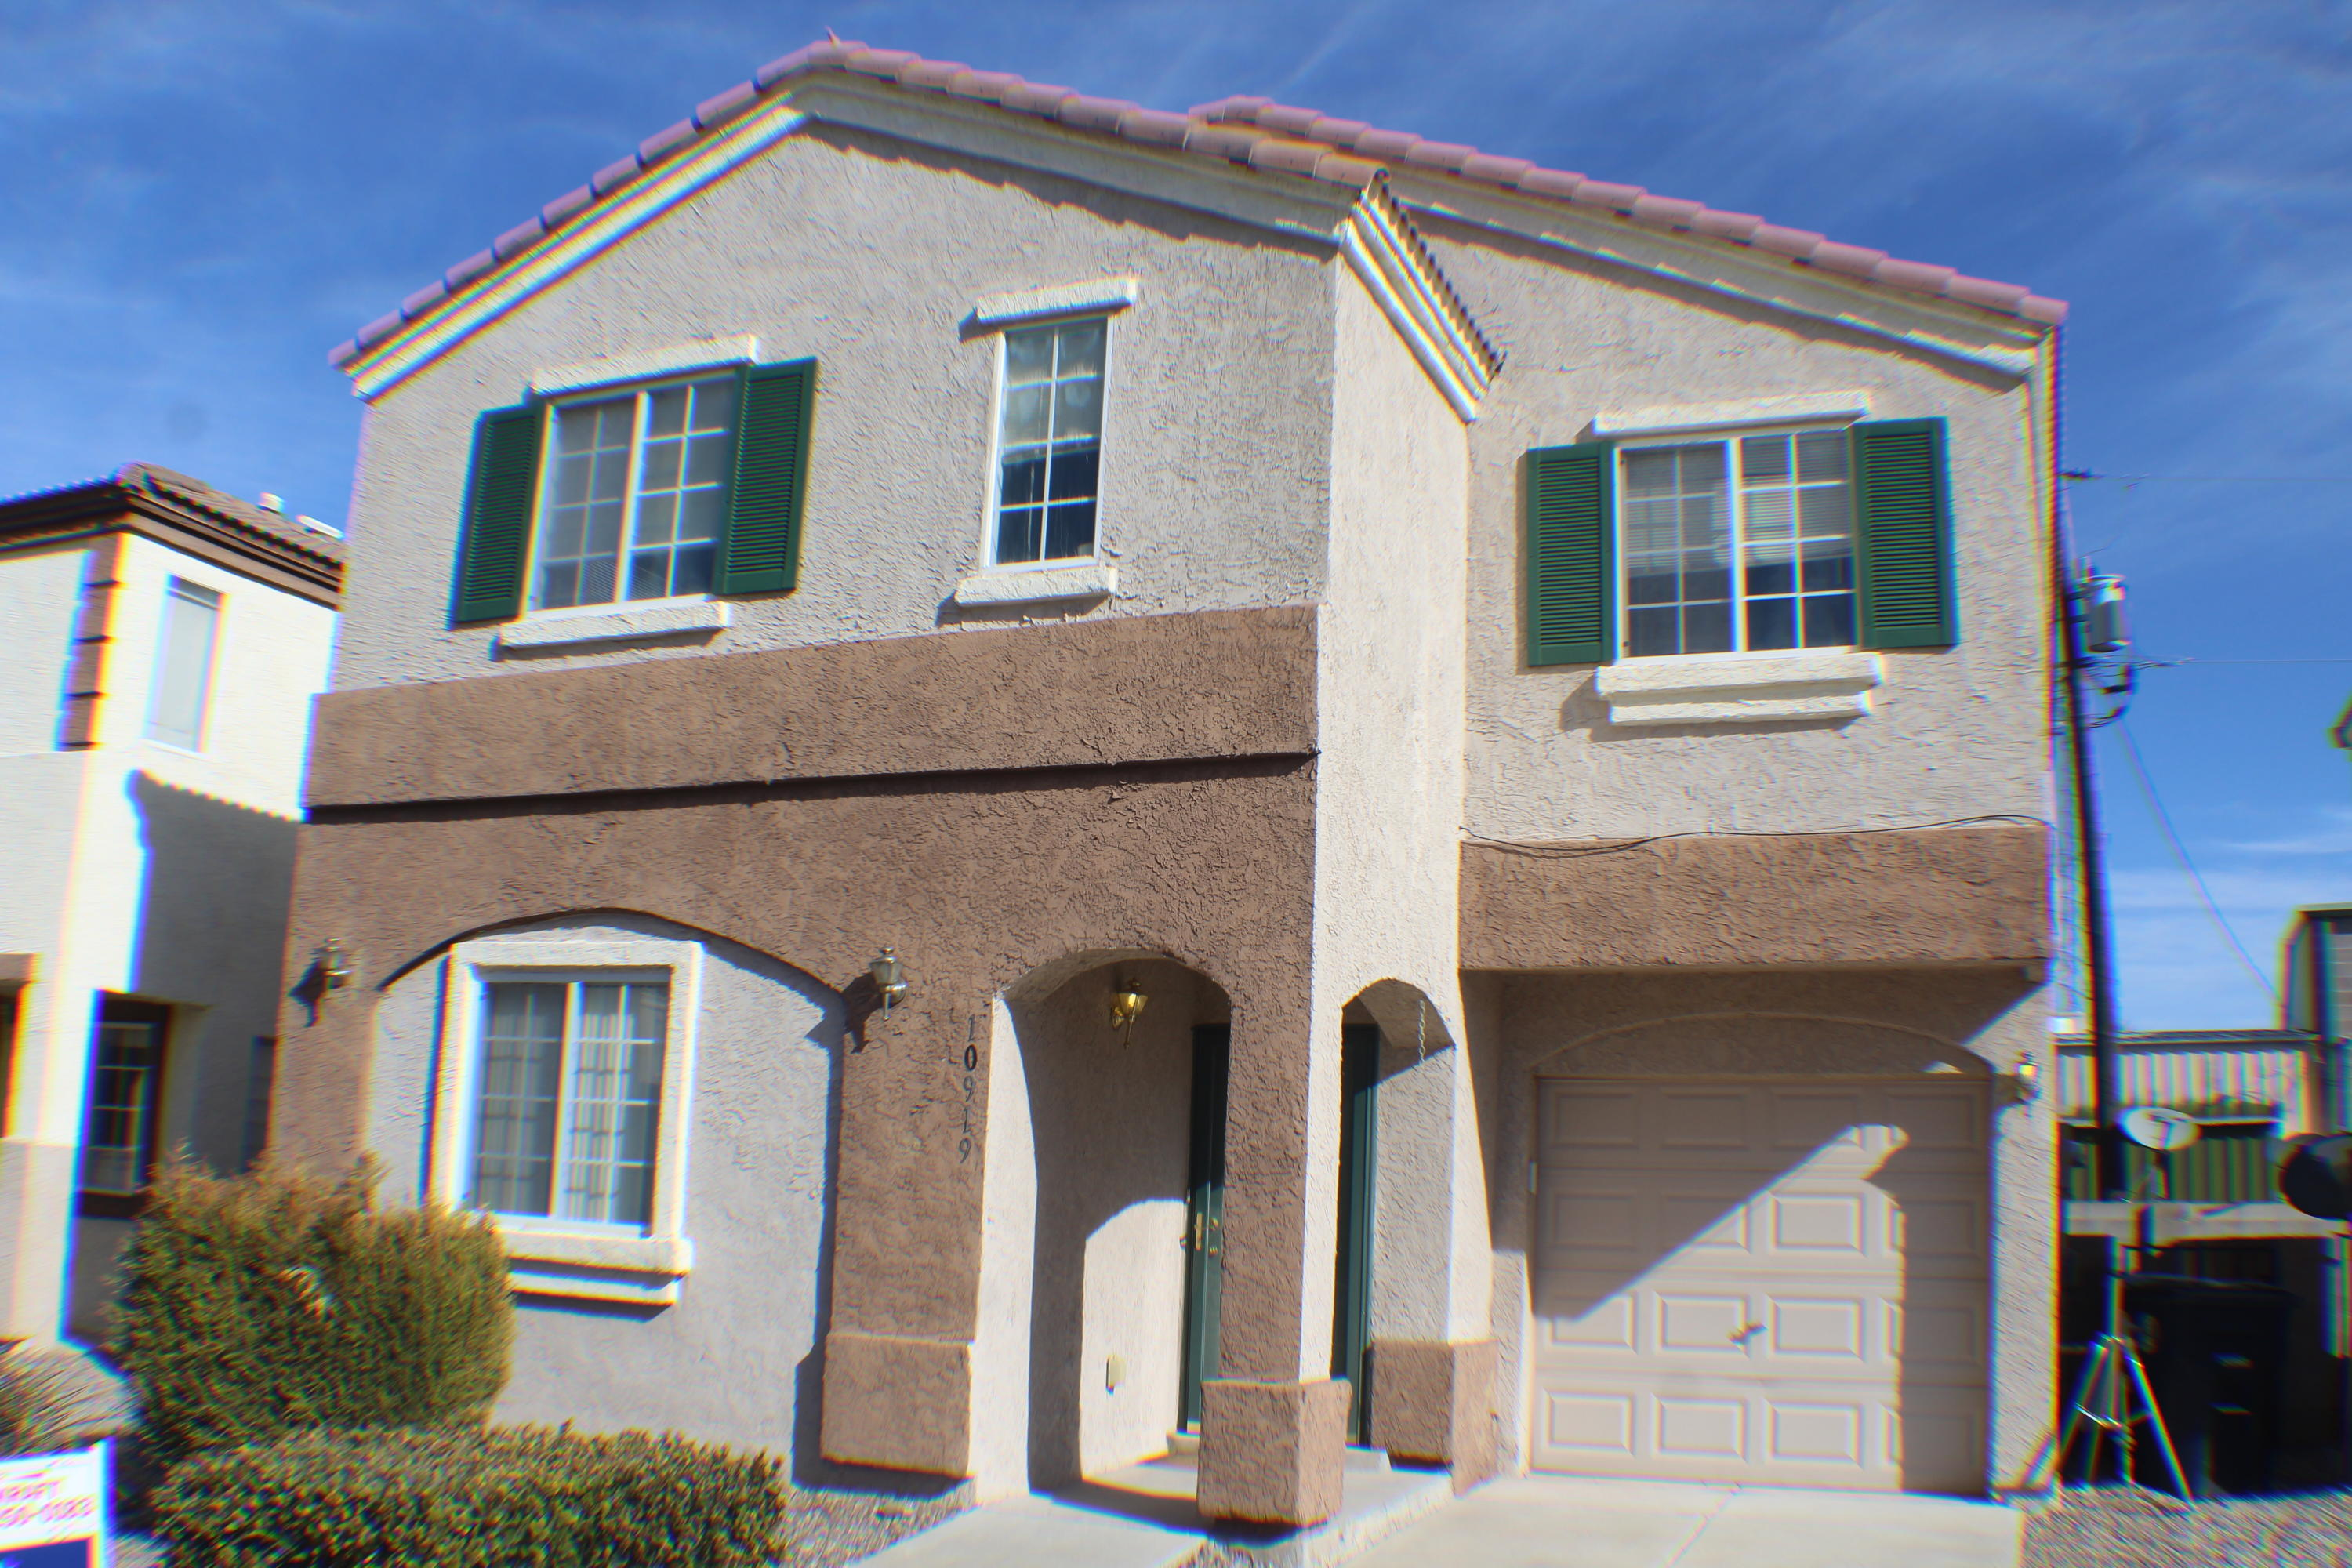 Great little house in gated area has terrific floor plan. 3rd bedroom downstairs has full bath . Master bedroom has huge sitting area, two large closets, two ceiling fan lights, garden tub in bathroom. Loft area has large windows.